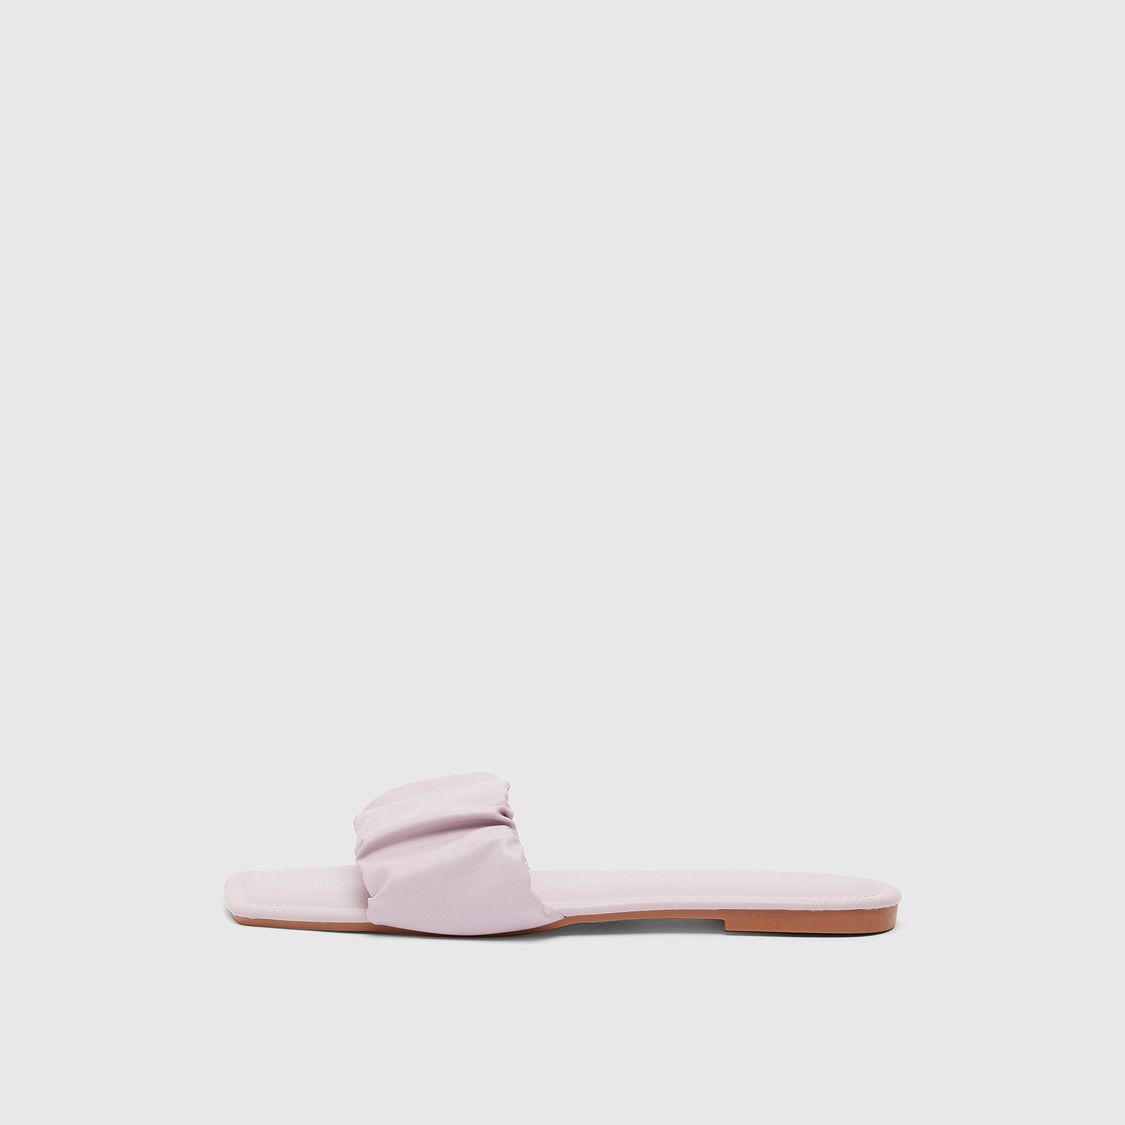 Solid Flat Slides with Patterned Strap